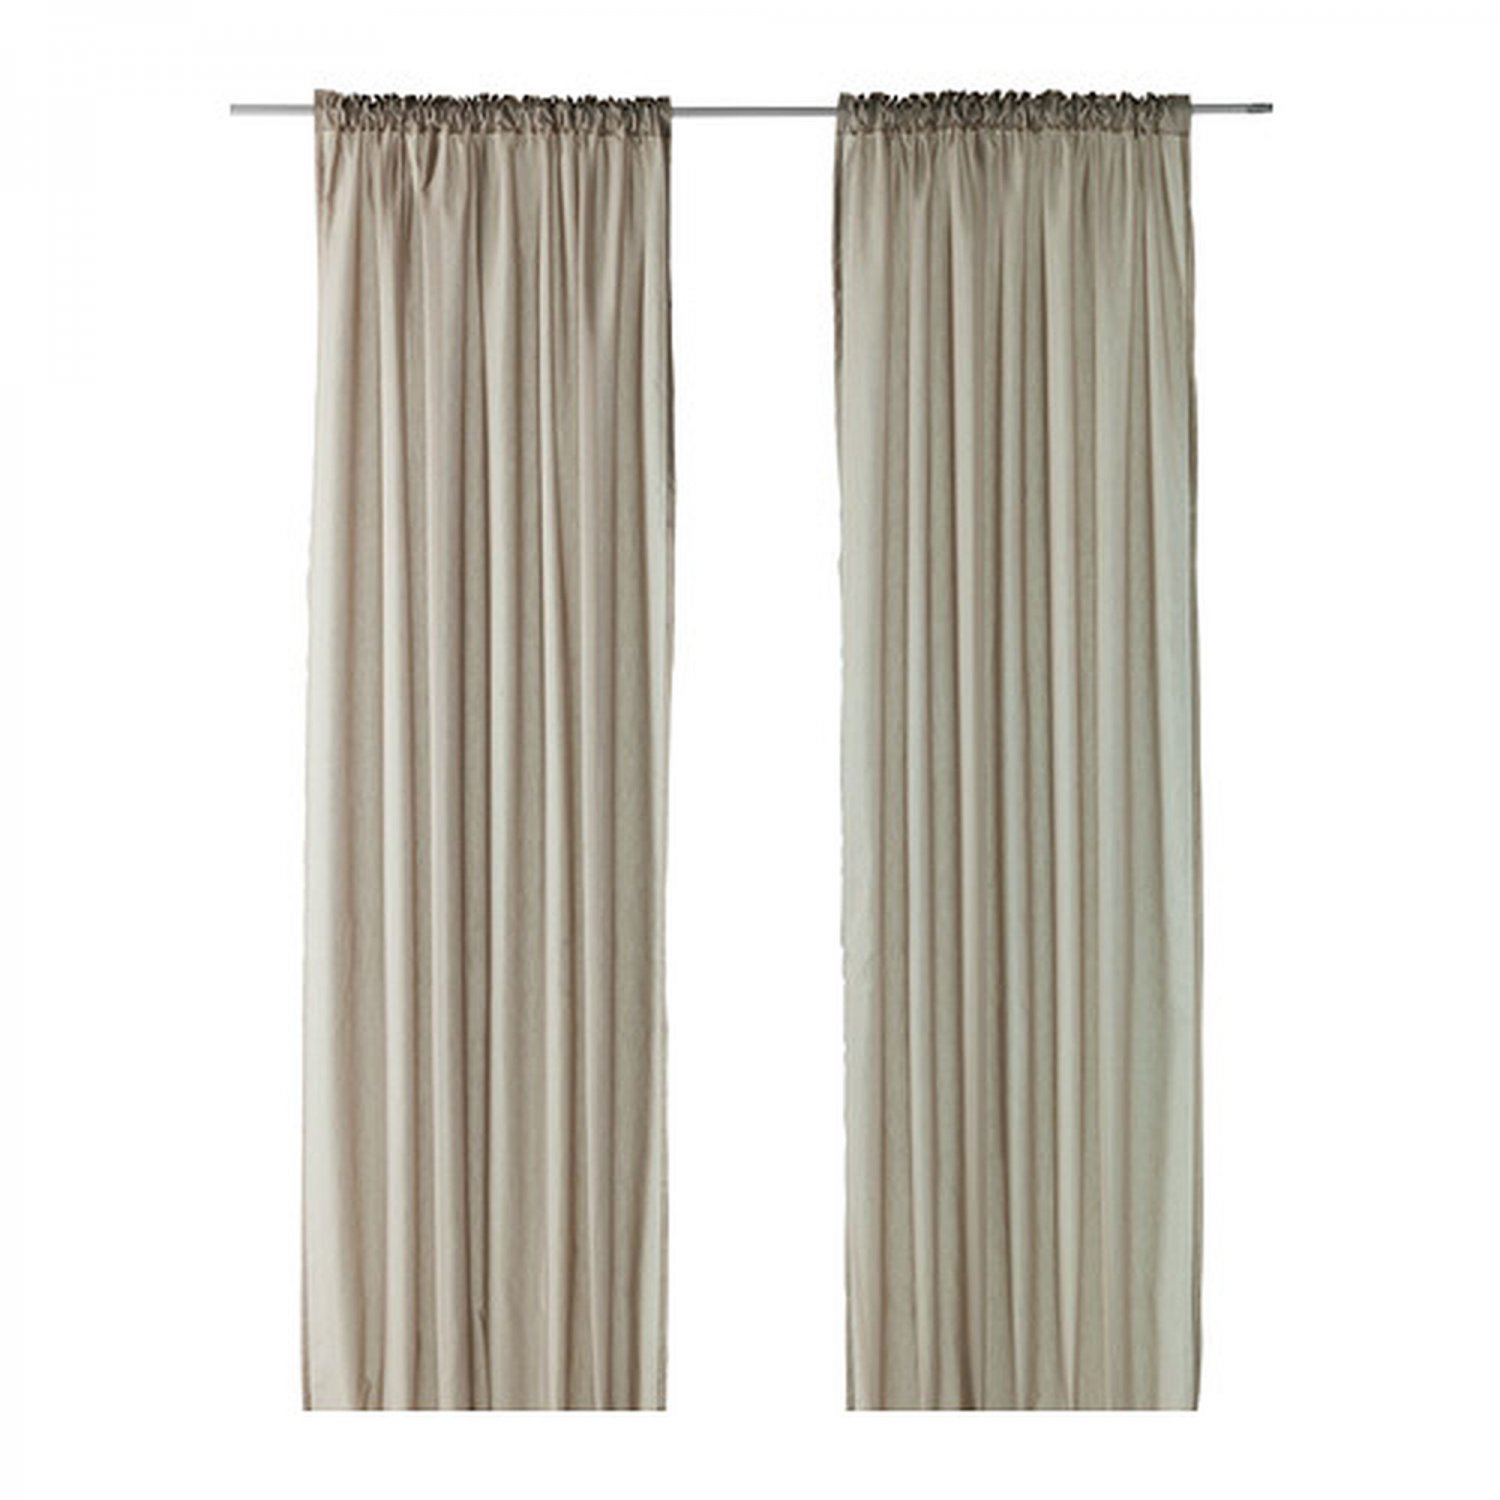 Ikea vivan curtains drapes beige 2 panels mushroom taupe Beige curtains